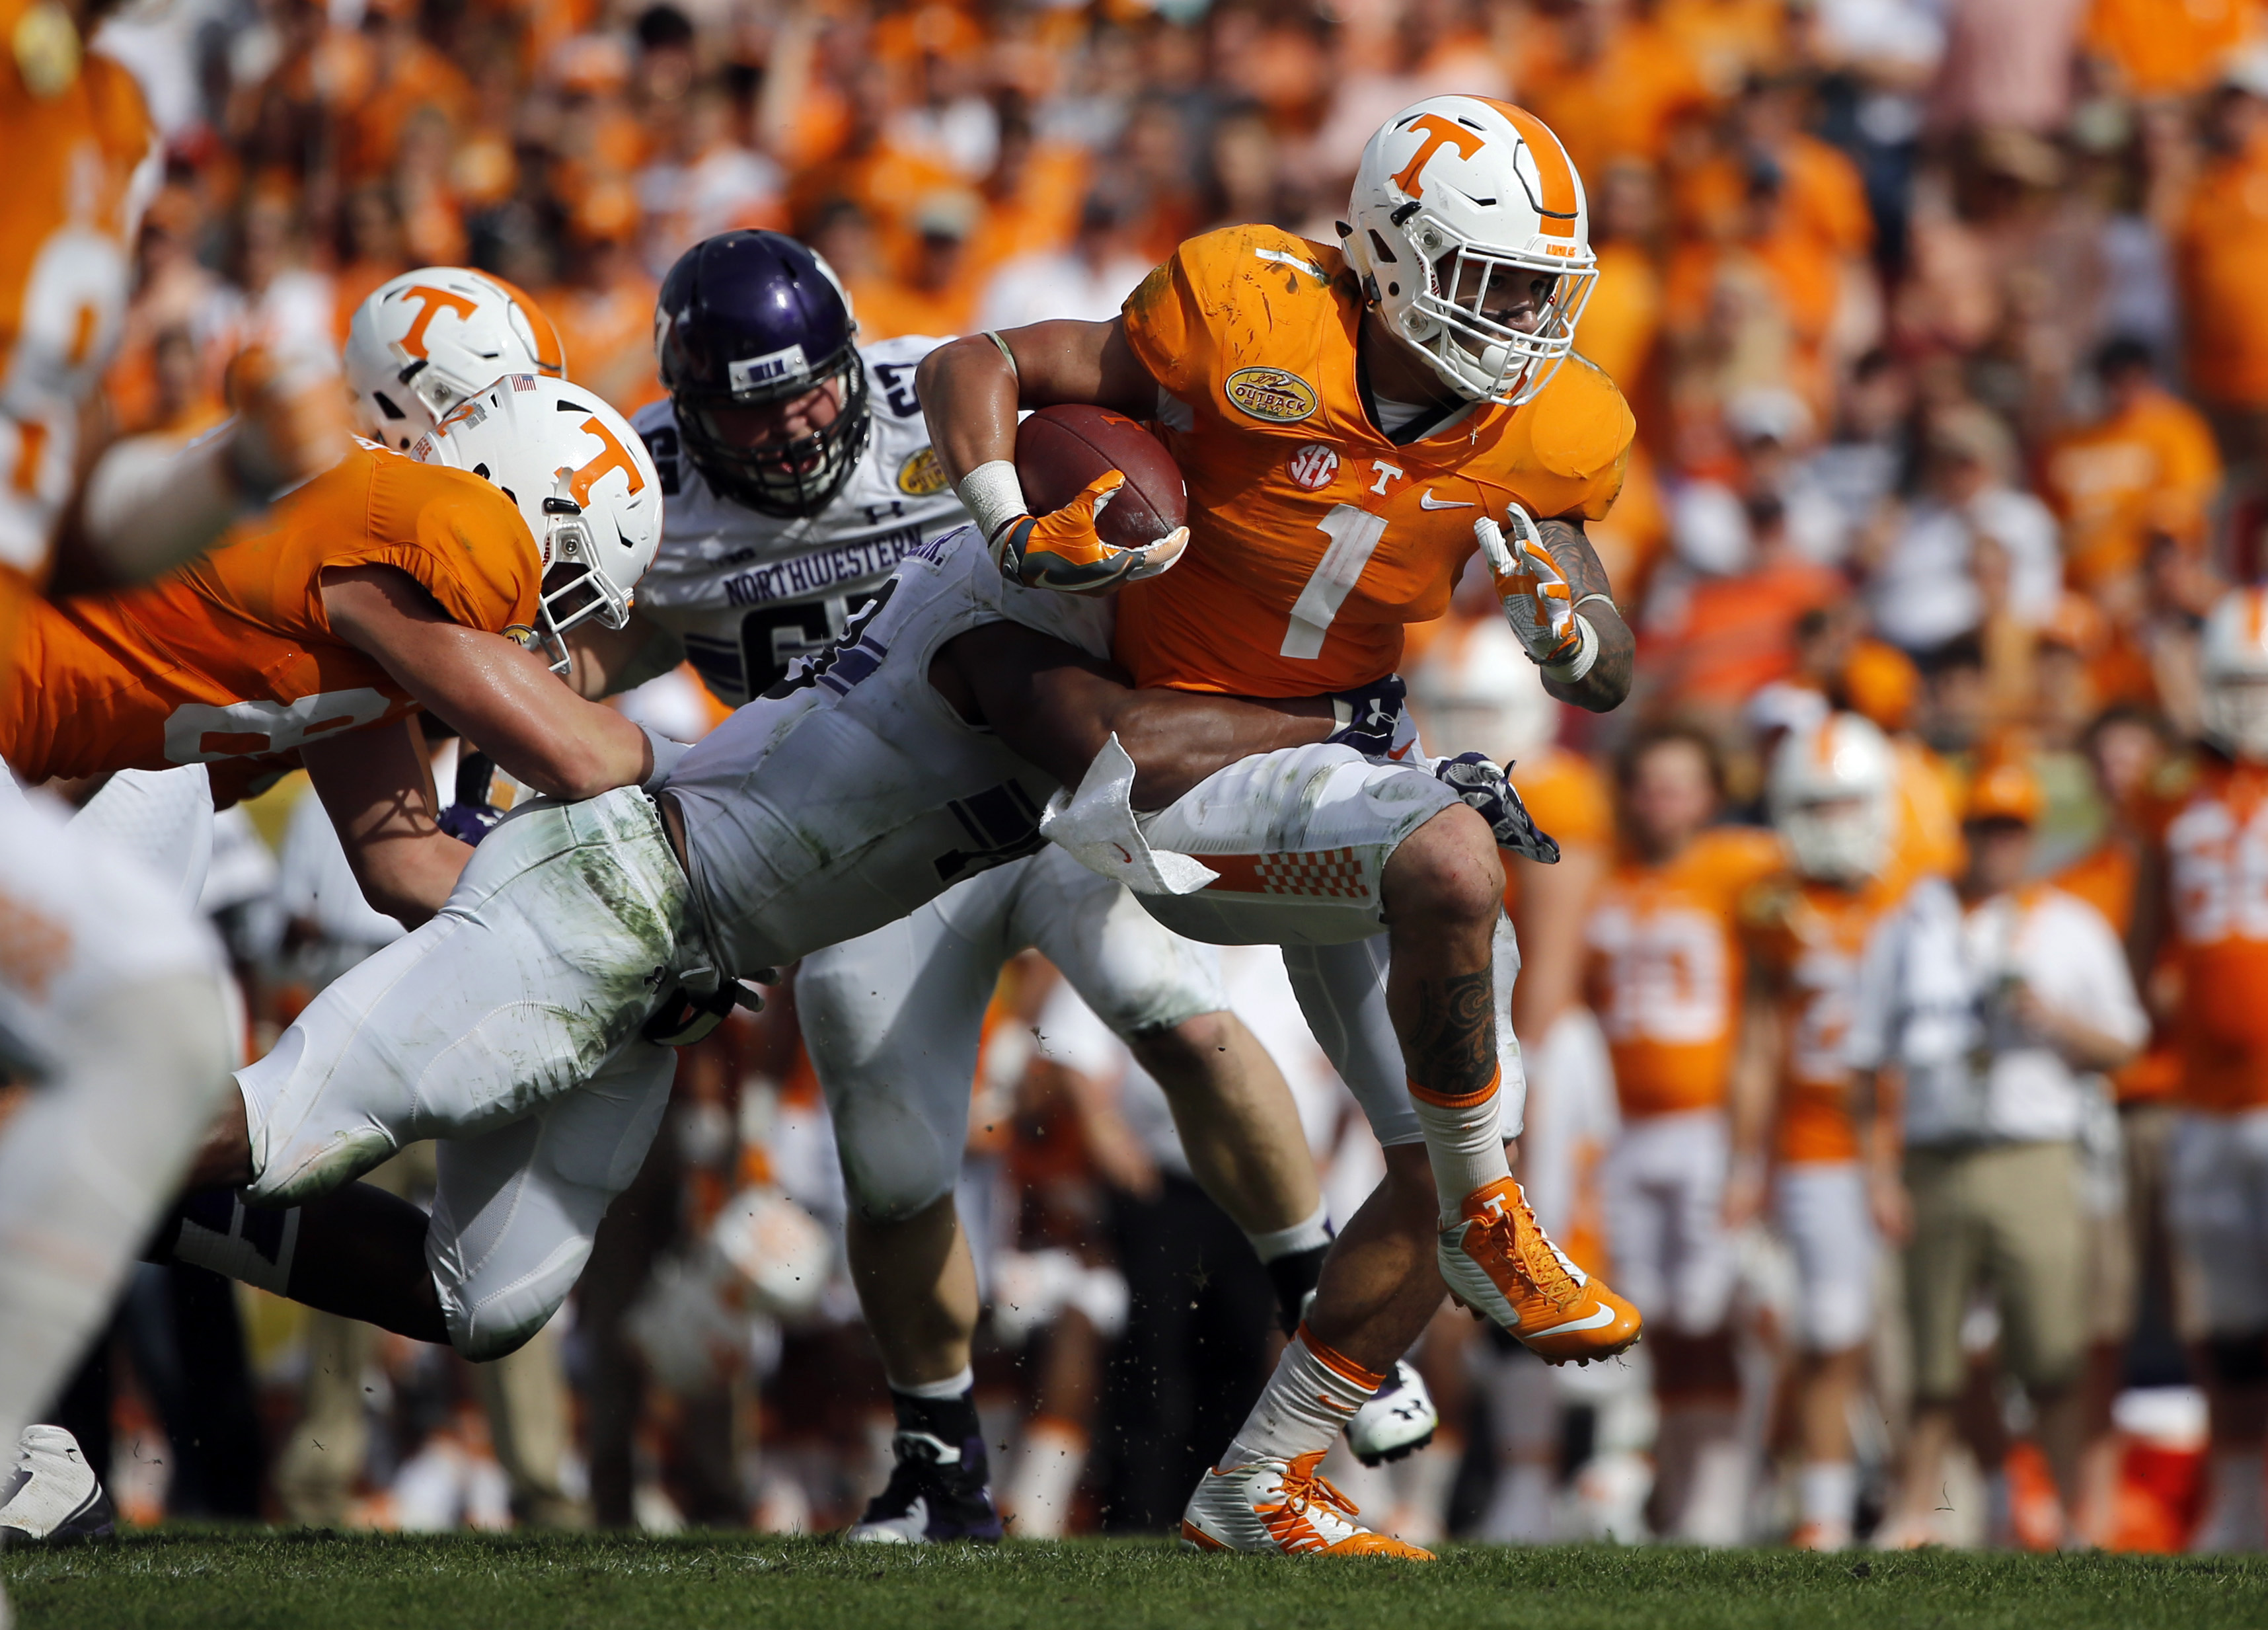 wbir.com | Tennessee beats Northwestern 45-6 in Outback ...